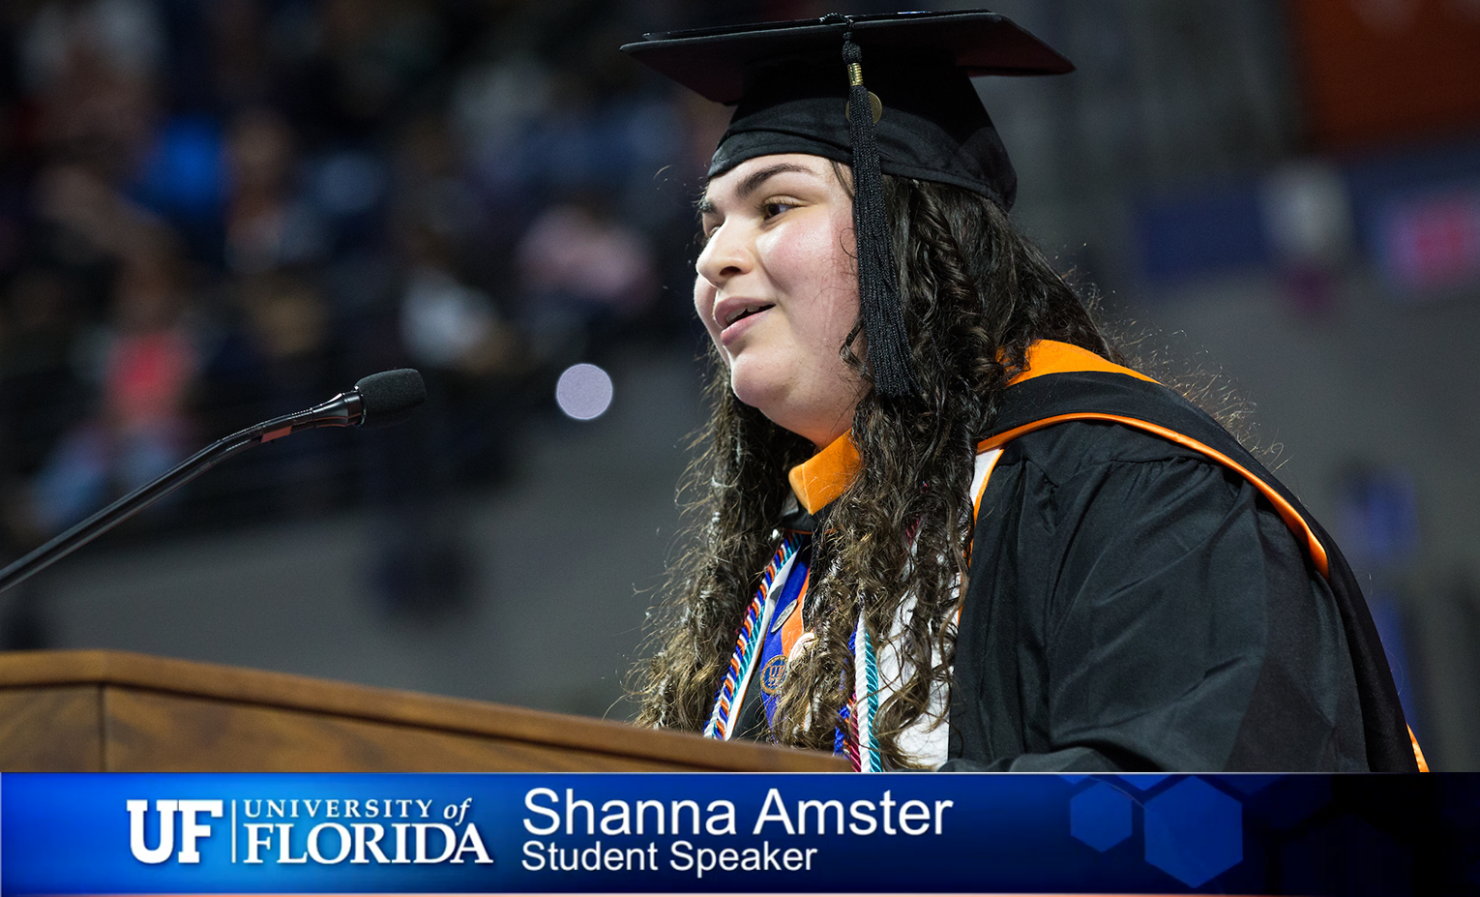 Shanna Amster at podium during graduation.